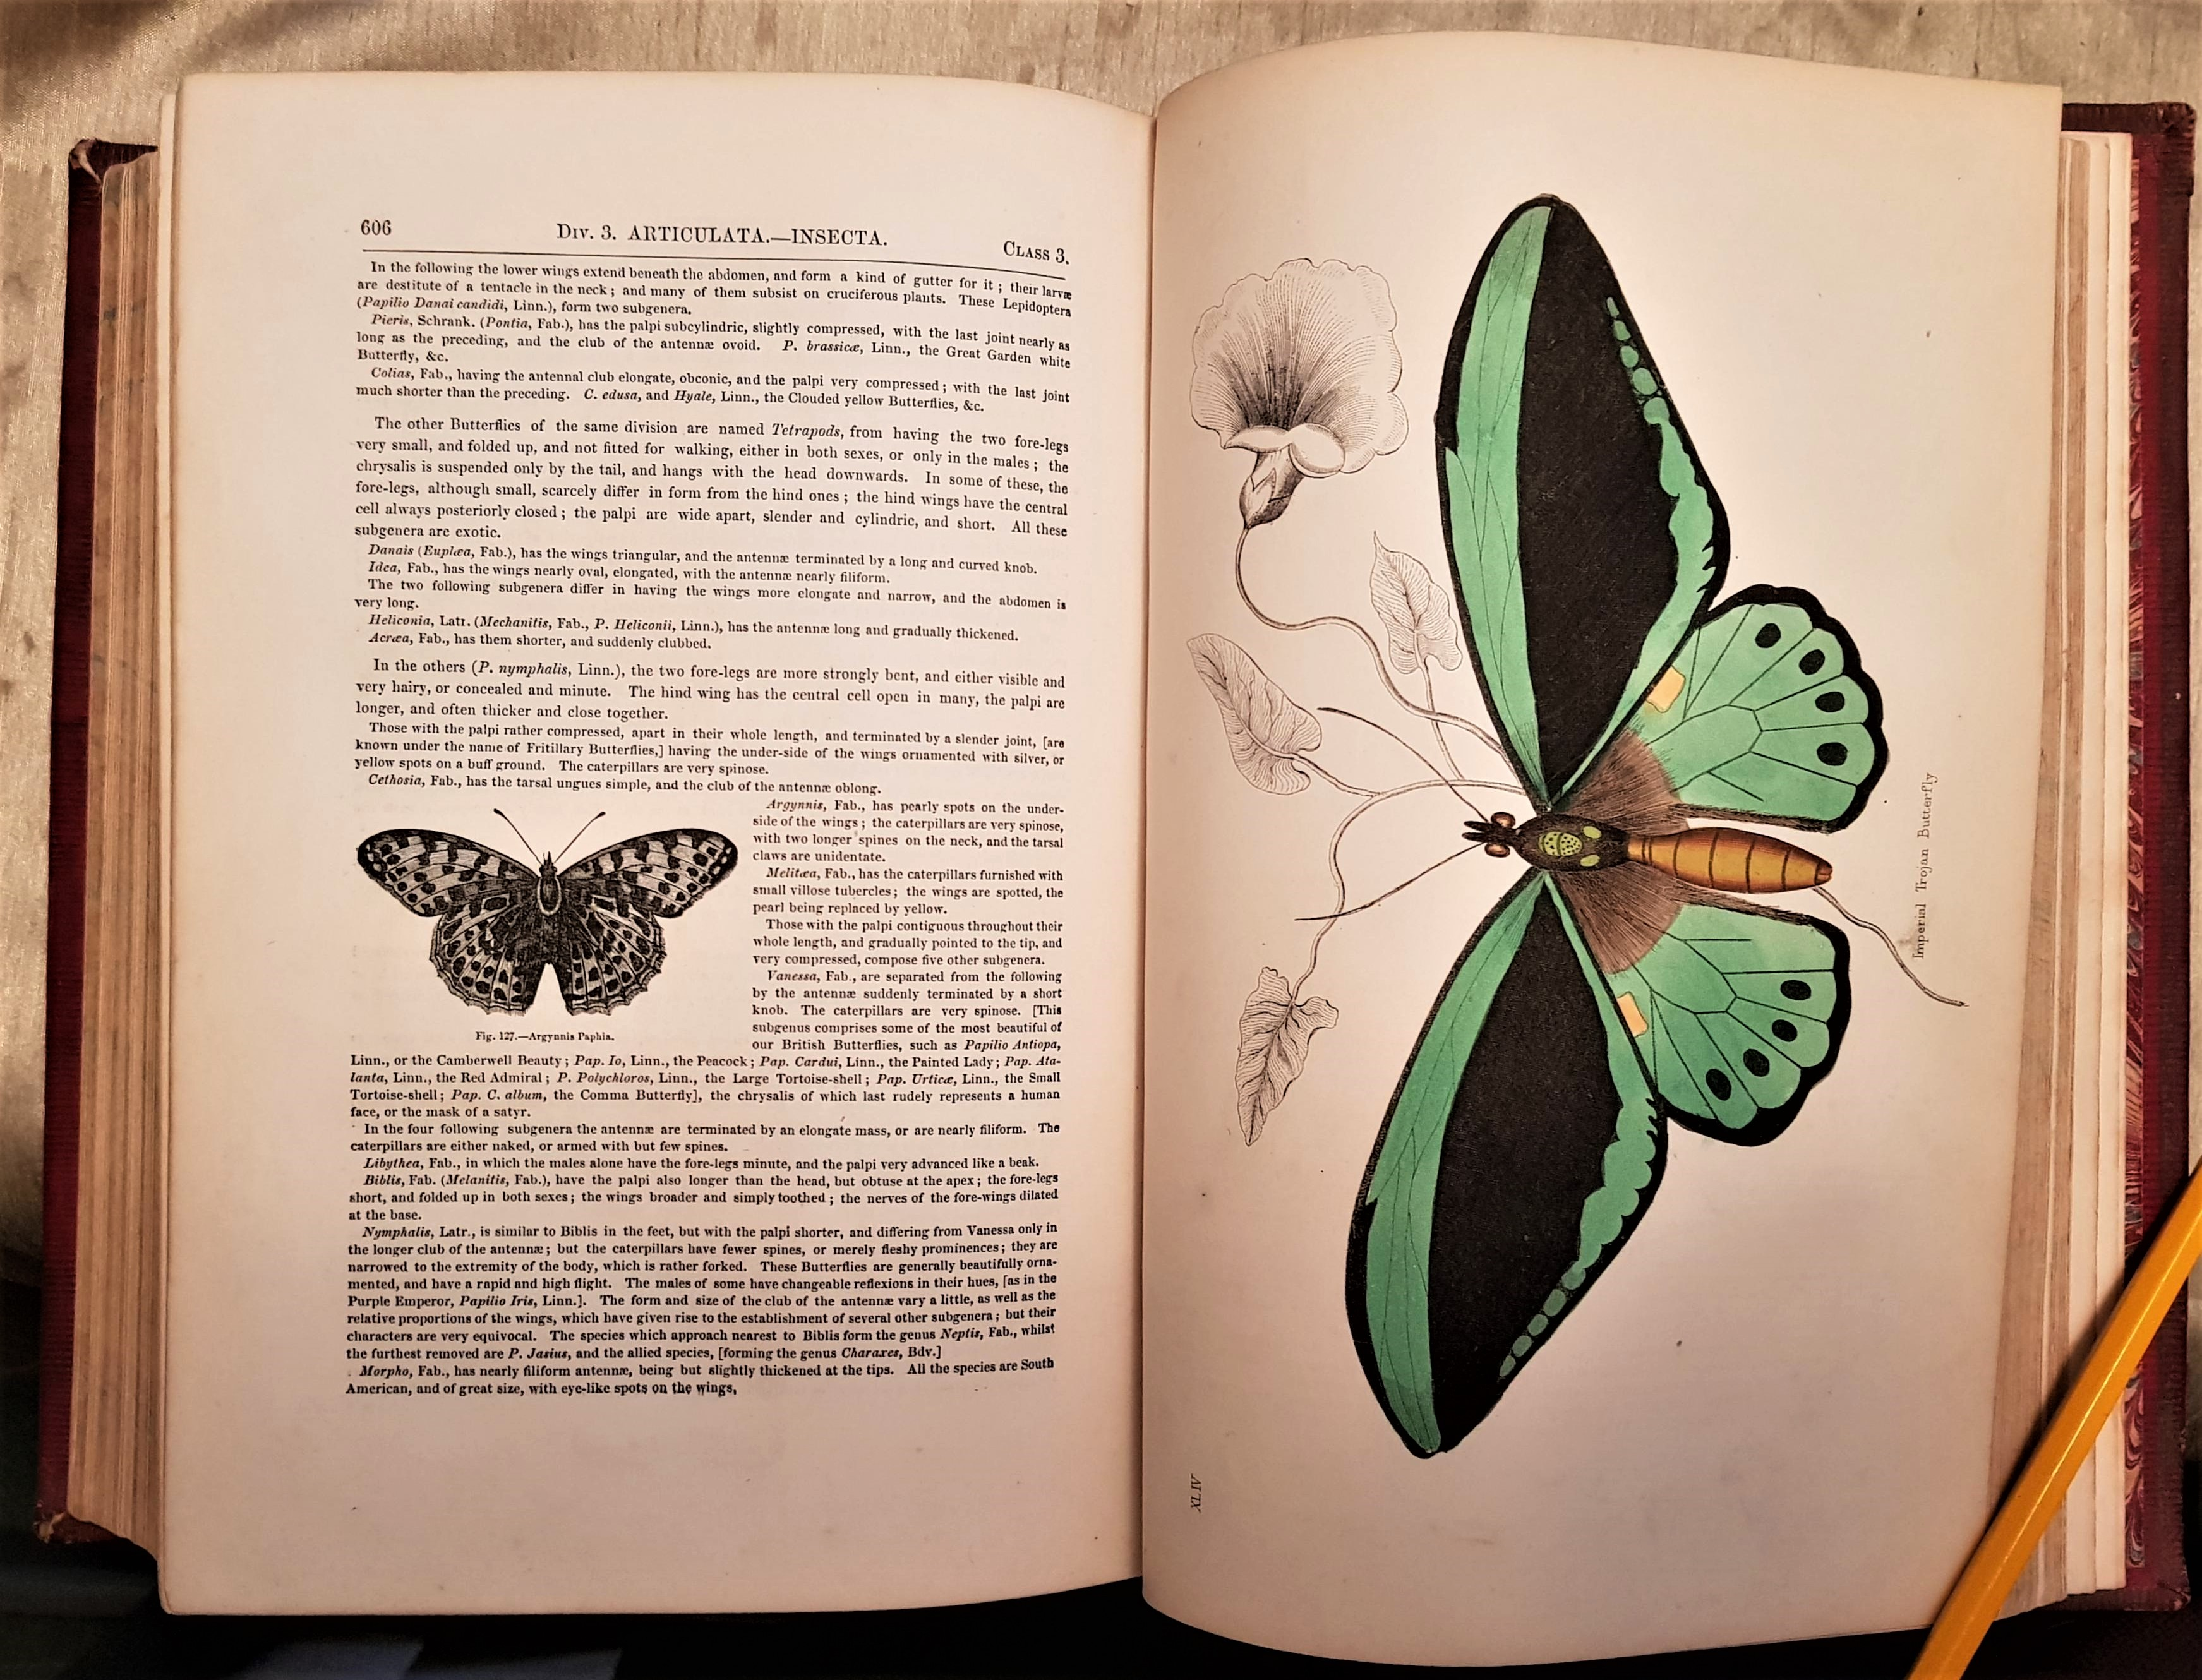 The Animal Kingdom, Arranged After Its Organization; Forming A Natural History Of Animals, And An Introduction To Comparative Anatomy. By The Late Baron Cuvier. Translated And Adapted To The Present State Of Science. New Edition...